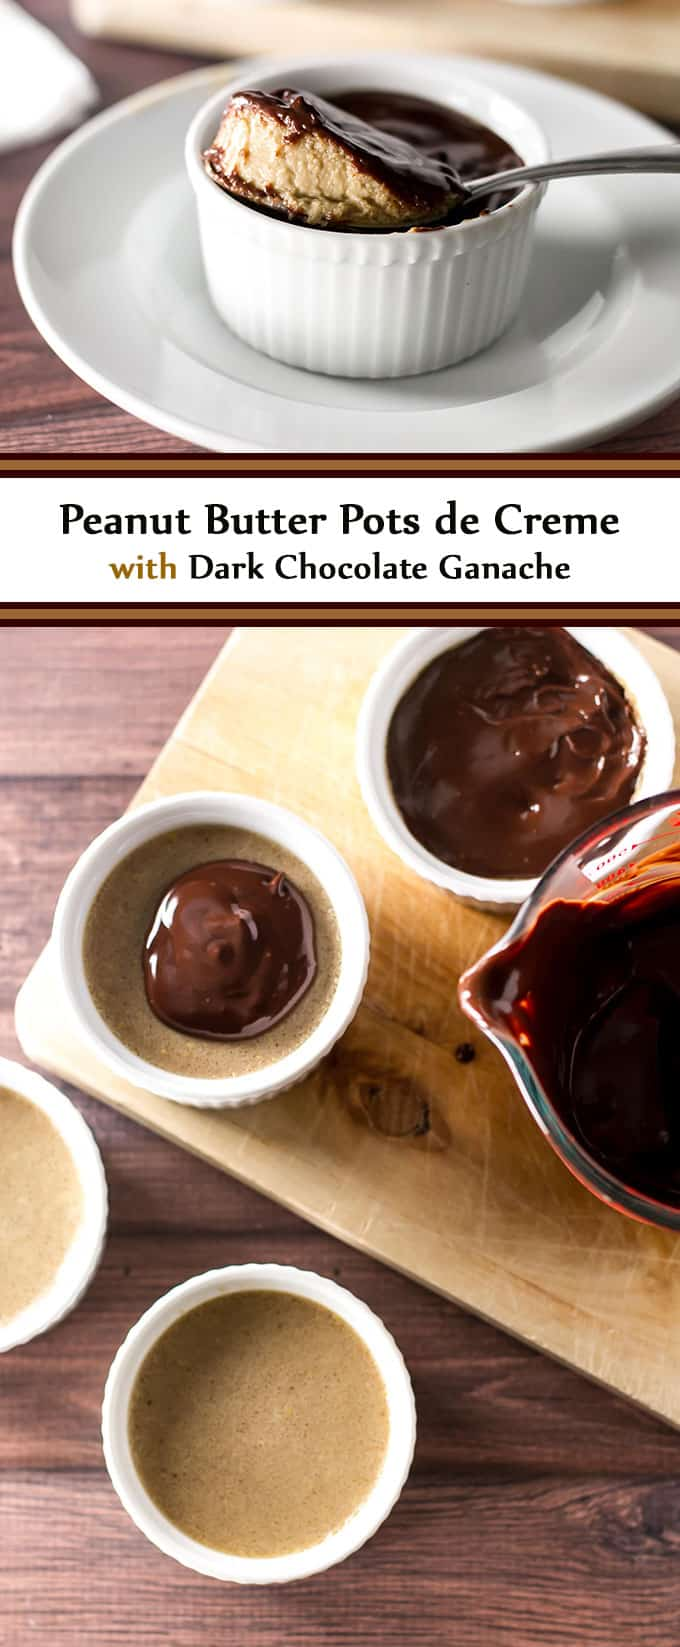 A creamy peanut butter custard topped with a rich chocolate ganache - these restaurant inspired peanut butter pots de creme are to die for! | girlgonegourmet.com